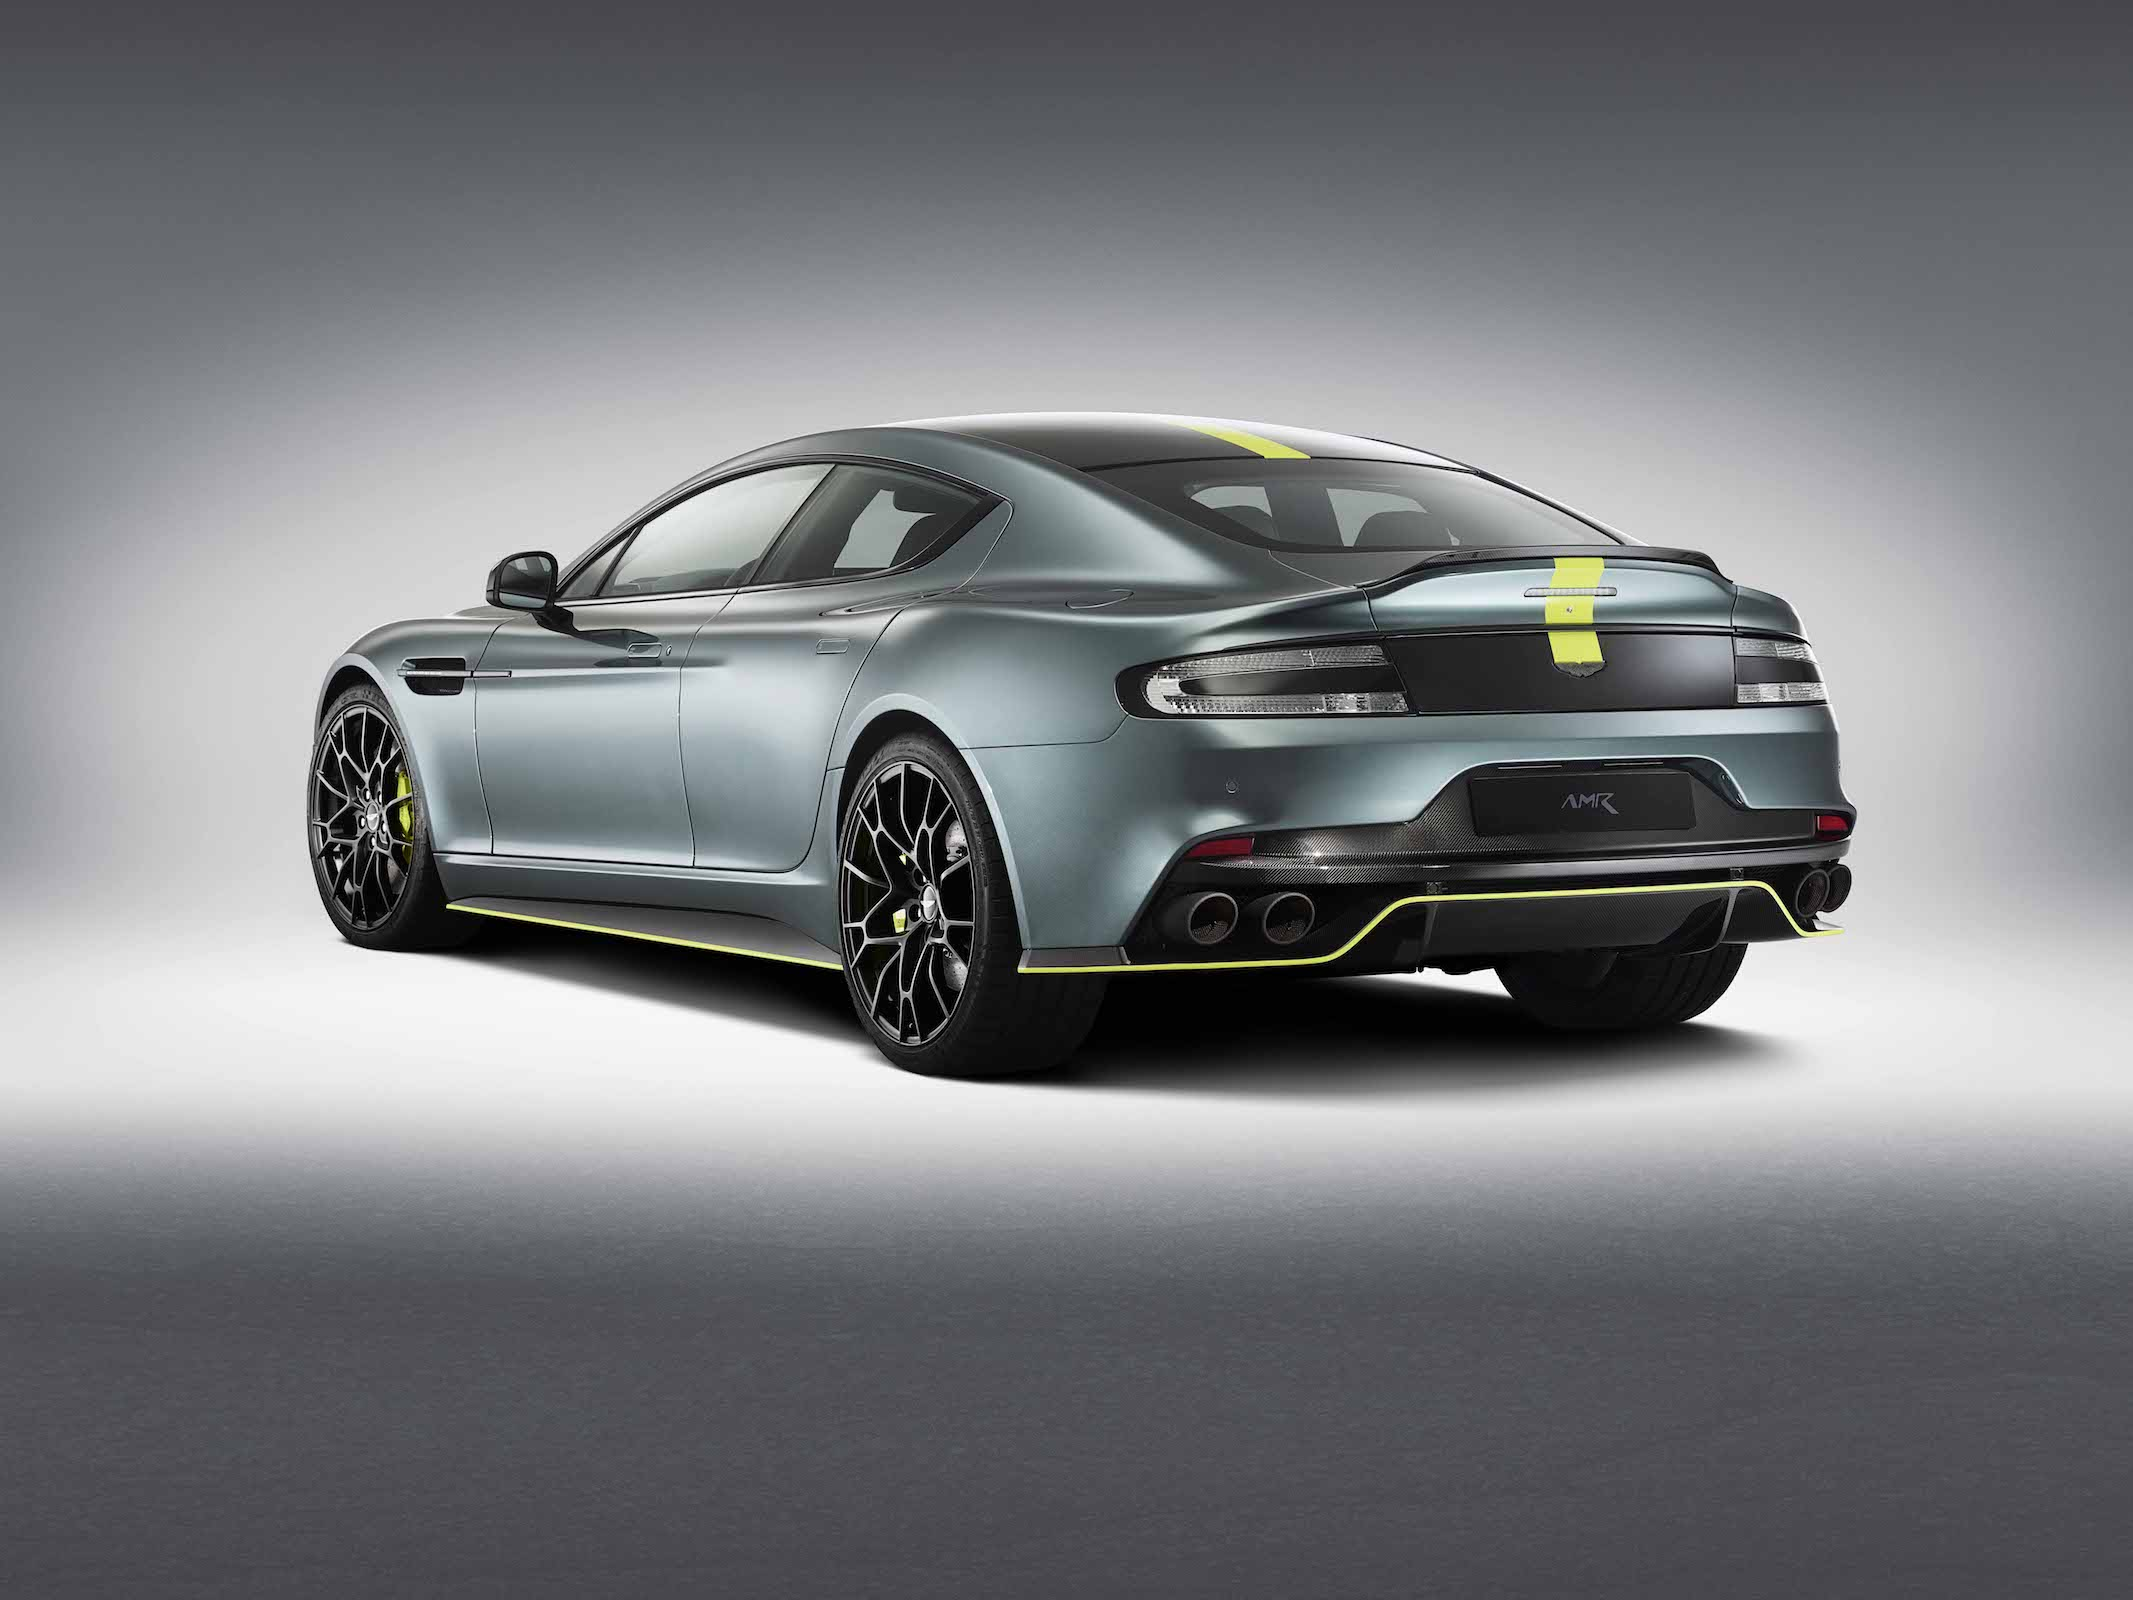 New Aston Martin Rapide AMR is Fast and Exclusive